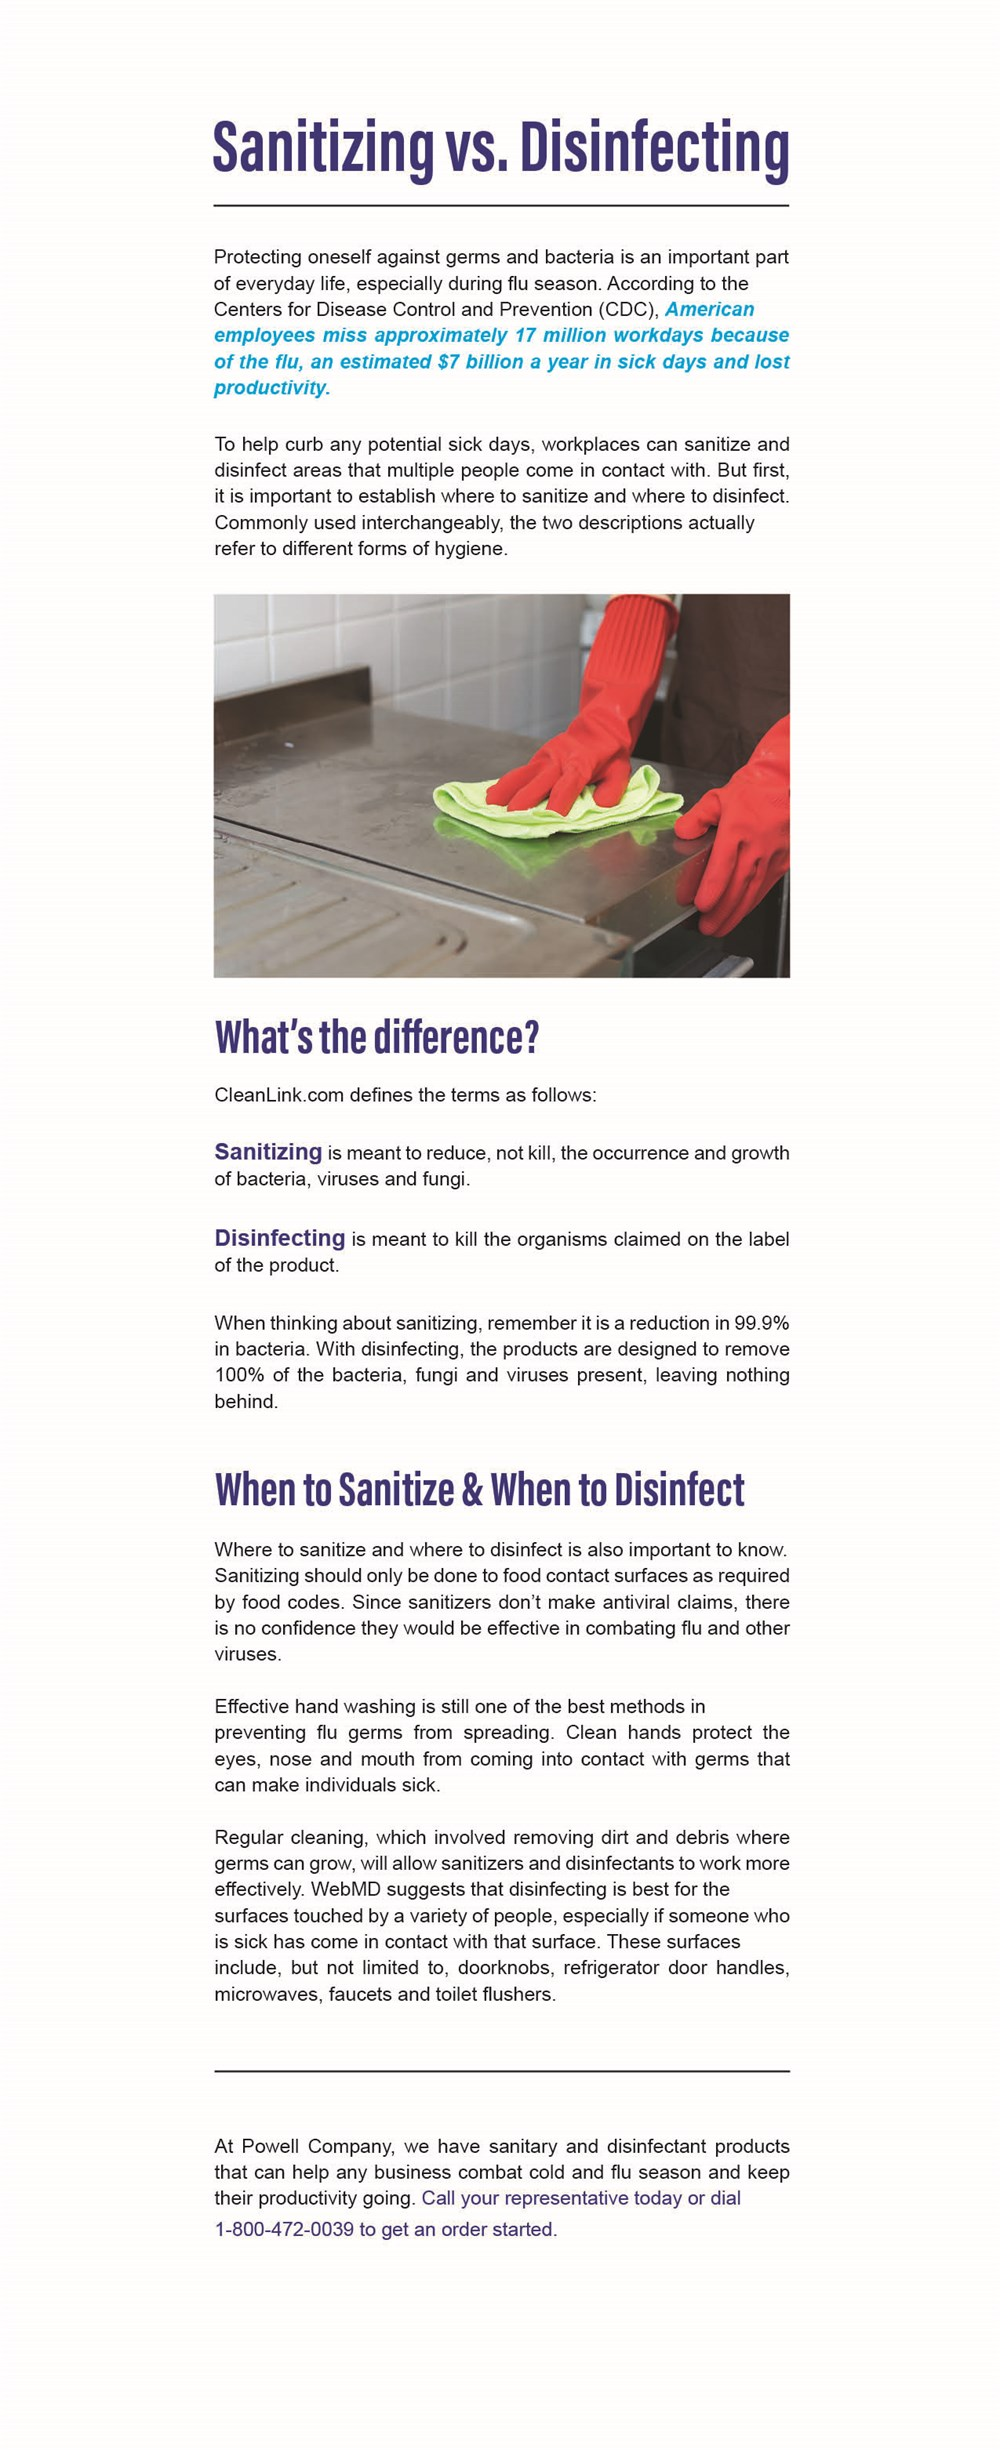 1-20 sanitizing vs disinfecting